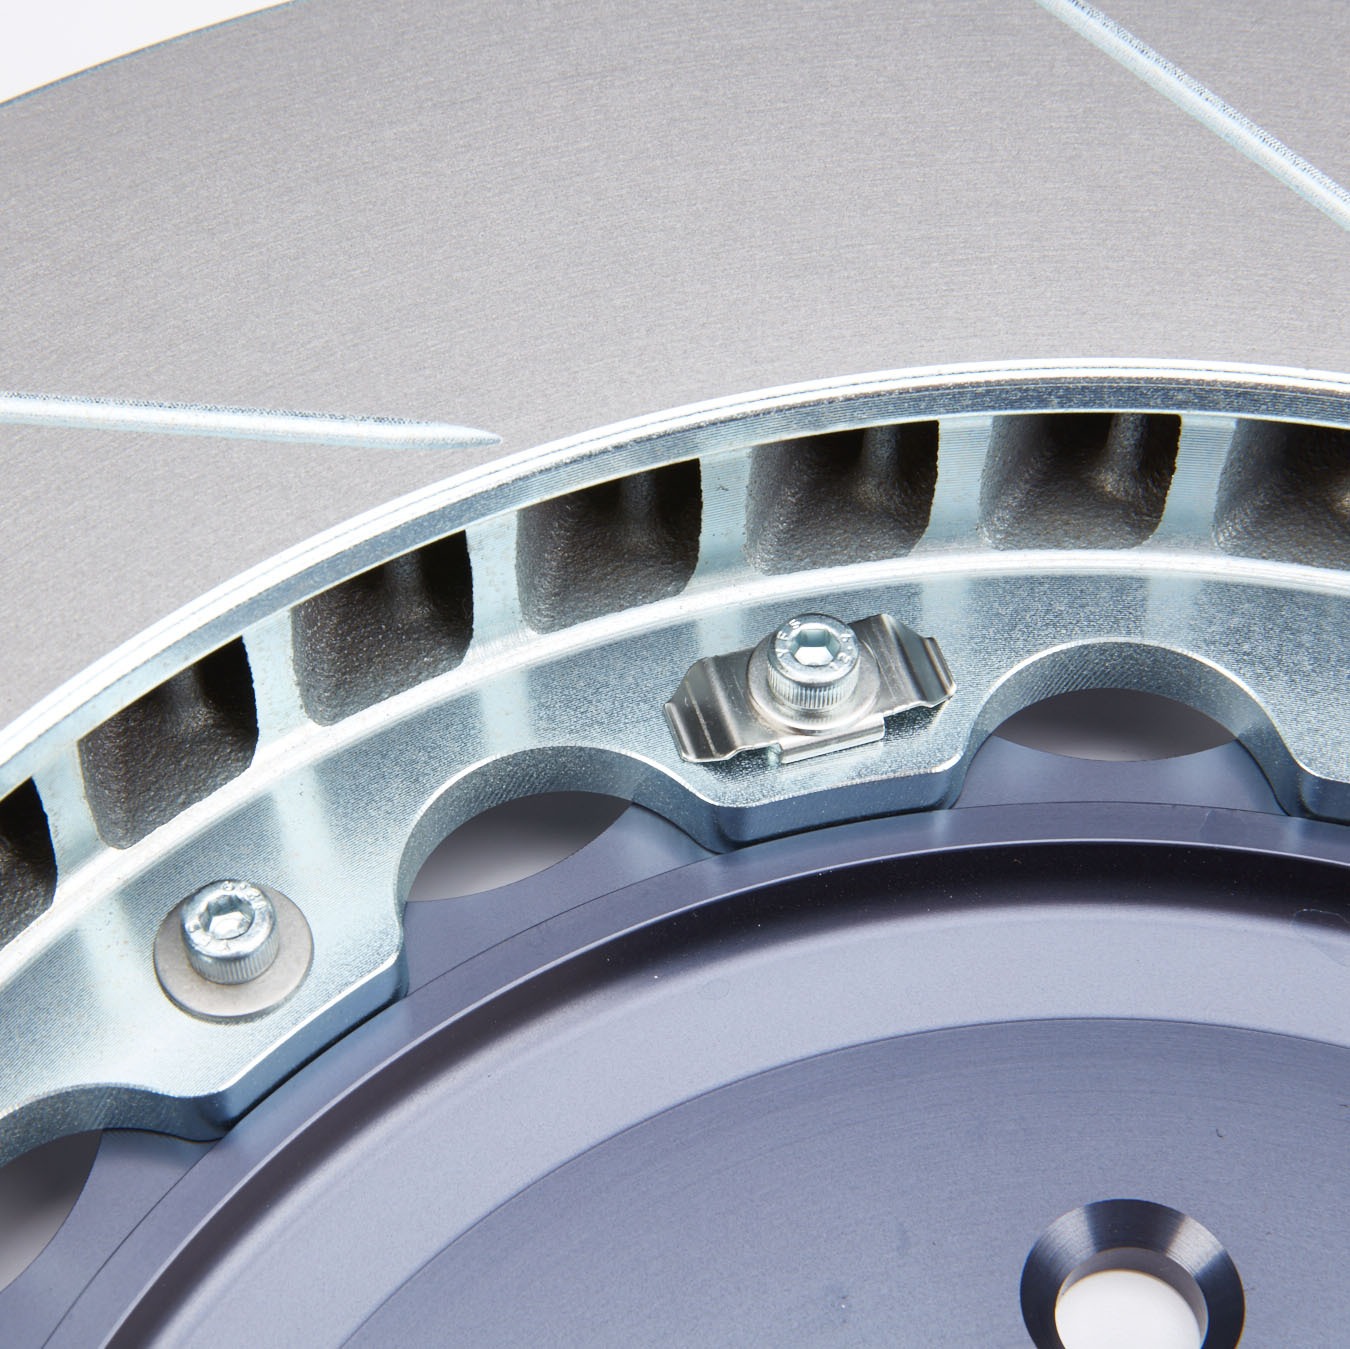 Girodisc Viper ACR A1-165 front replacement rotors